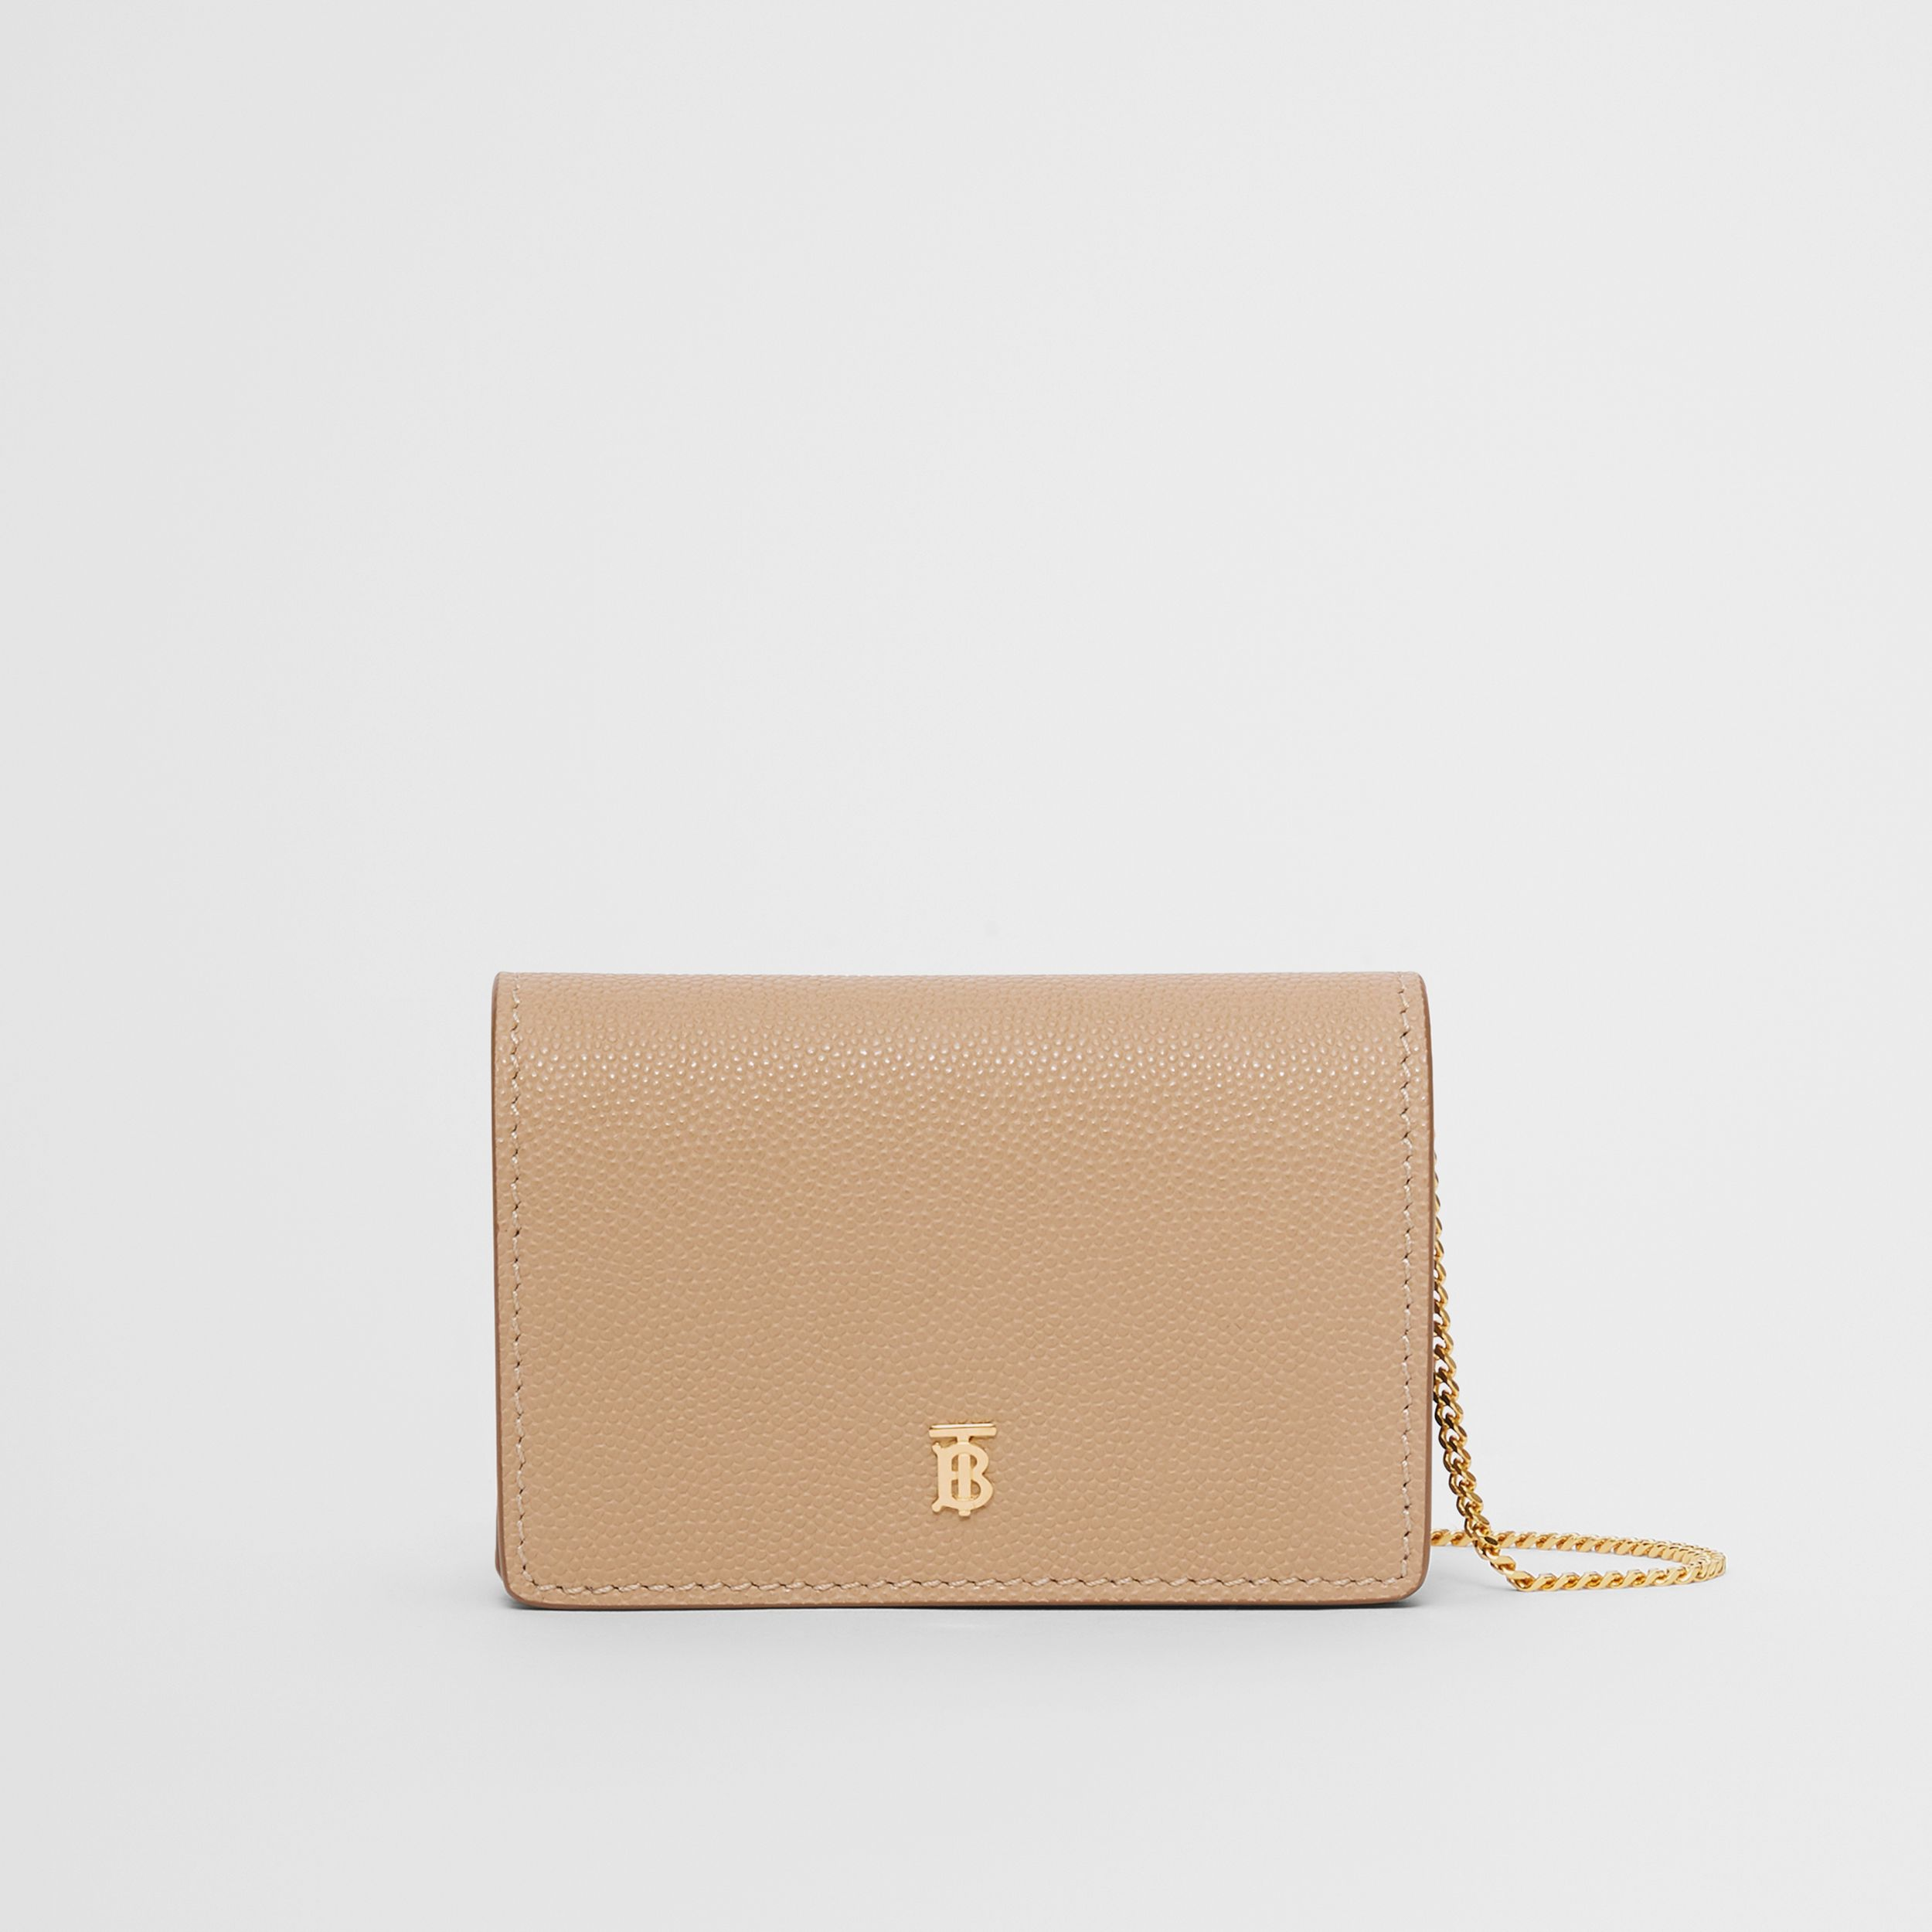 Porte-cartes en cuir grainé avec sangle amovible (Beige D'archive) - Femme | Burberry - 1